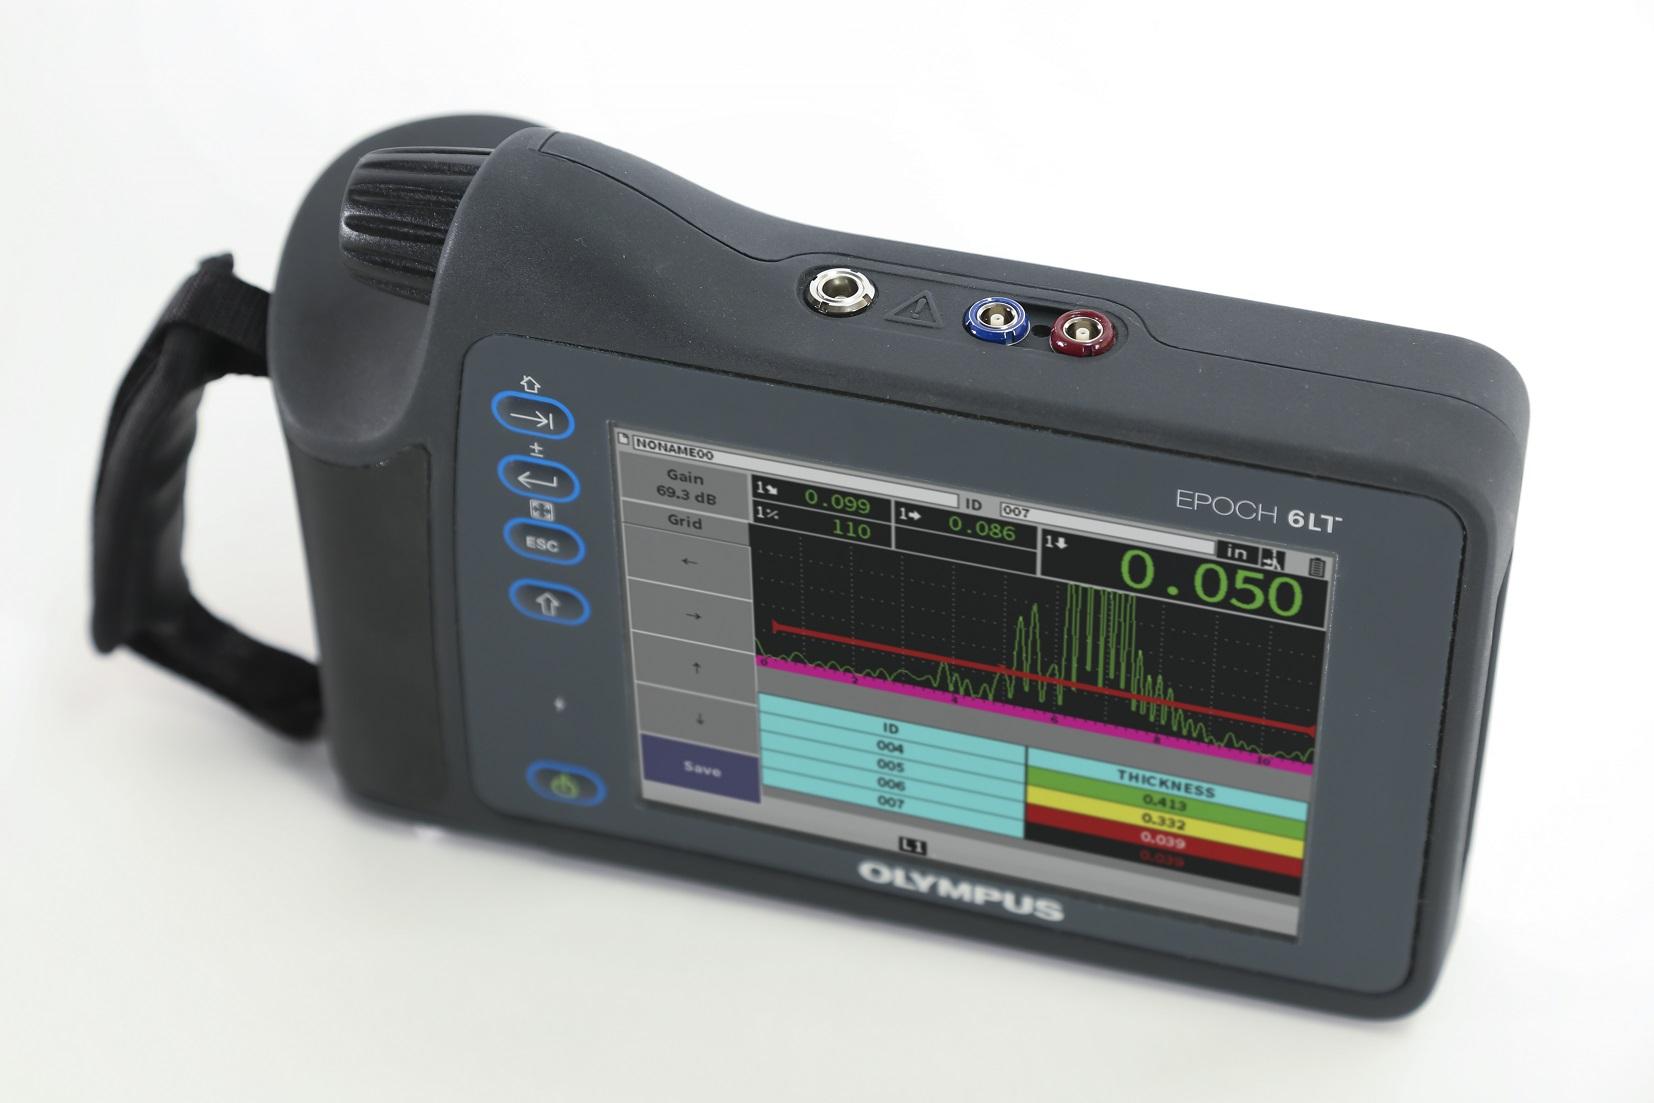 Ultrasonic flaw detector for industrial inspection